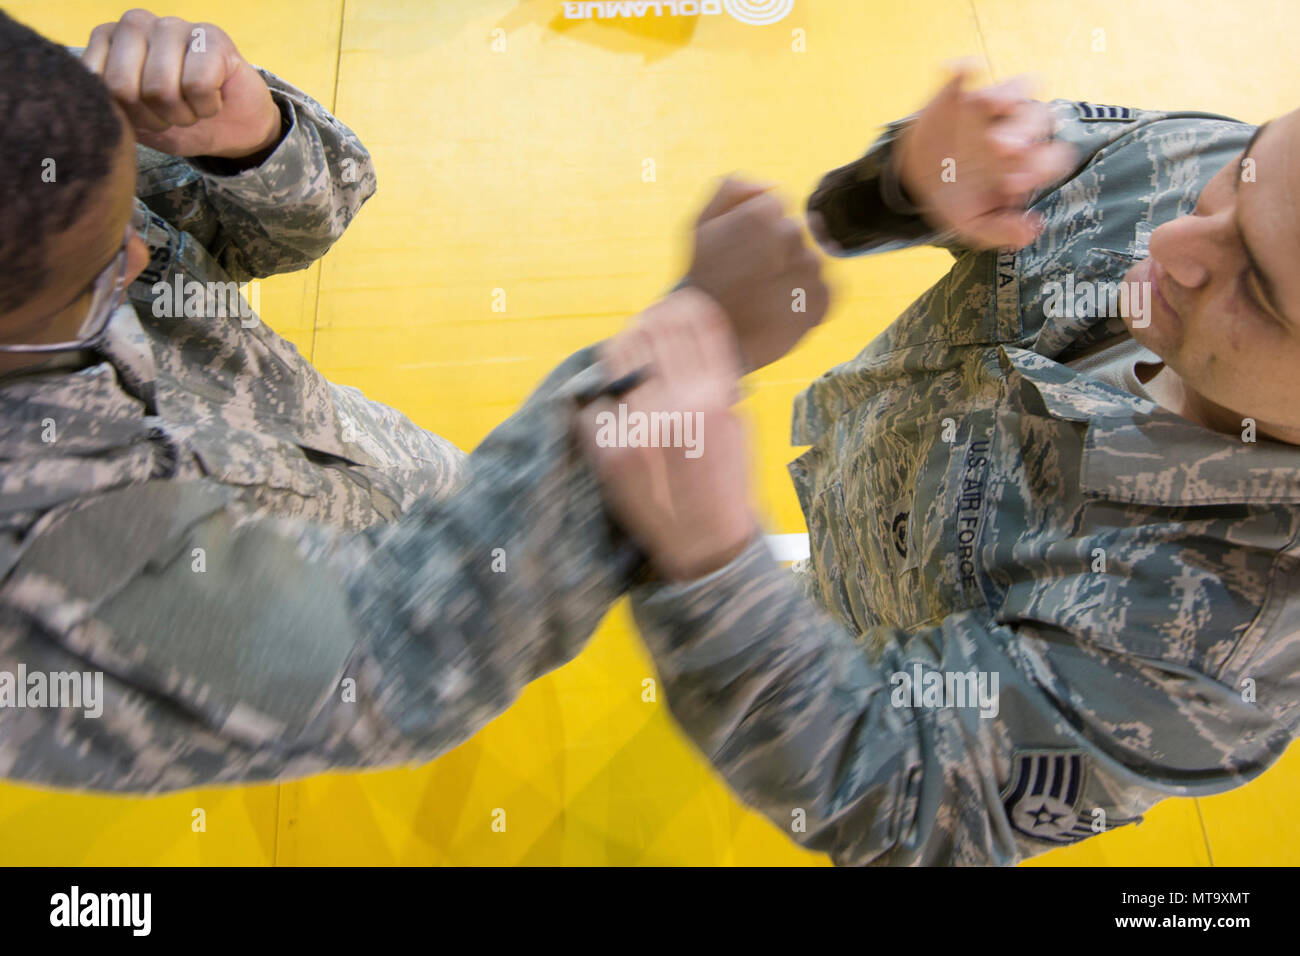 U.S. Air Force Staff Sgt. Mario Huerta (right), assigned to the SACEUR Security Detachment, describes the jab thrown by U.S. Army  Sgt. Terrance Simmons, with the Northern Law Center, 21st Theater Sustainment Command, throws, during the  Joint Tactical Combatives Course, on Chièvres Air Base, Belgium, March 9, 2018. - Stock Image